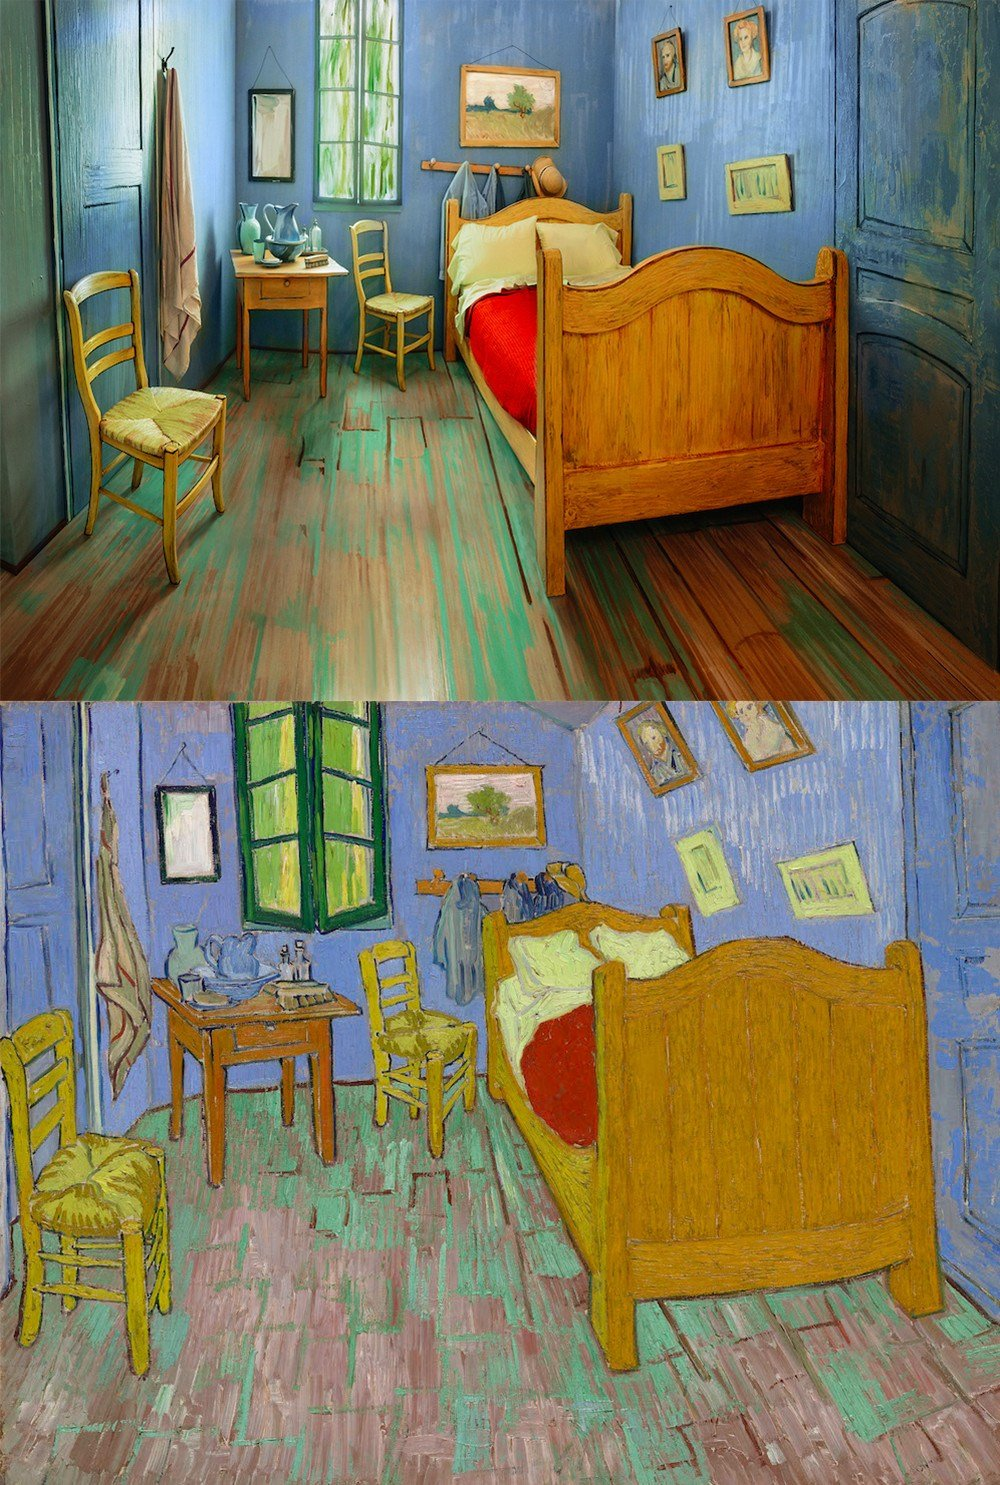 Best The Art Institute Of Chicago Recreates Van Gogh's Famous Bedroom To Be Rented On Airbnb Colossal With Pictures